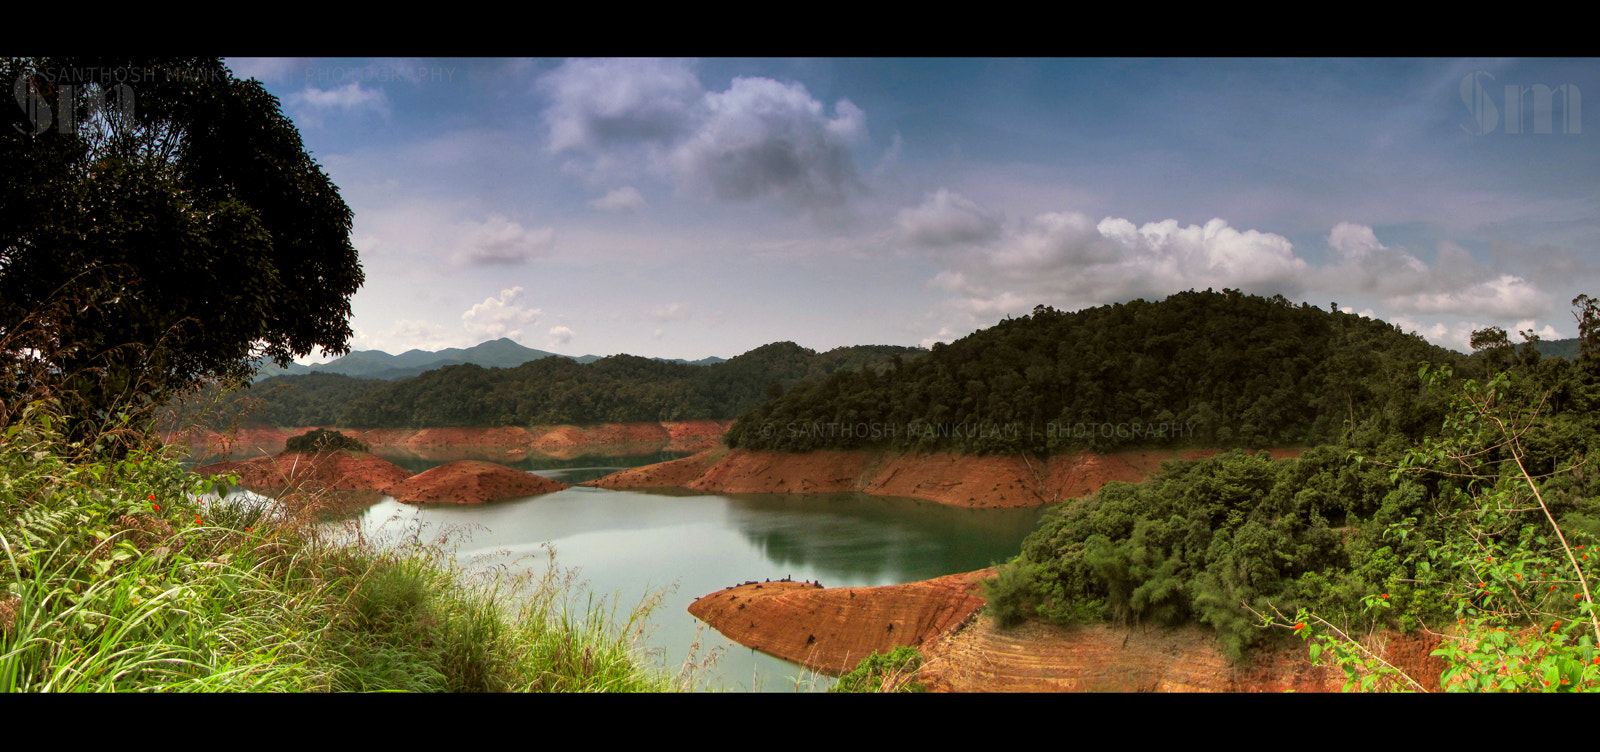 Photograph Dam(n) View by Santhosh Mankulam on 500px